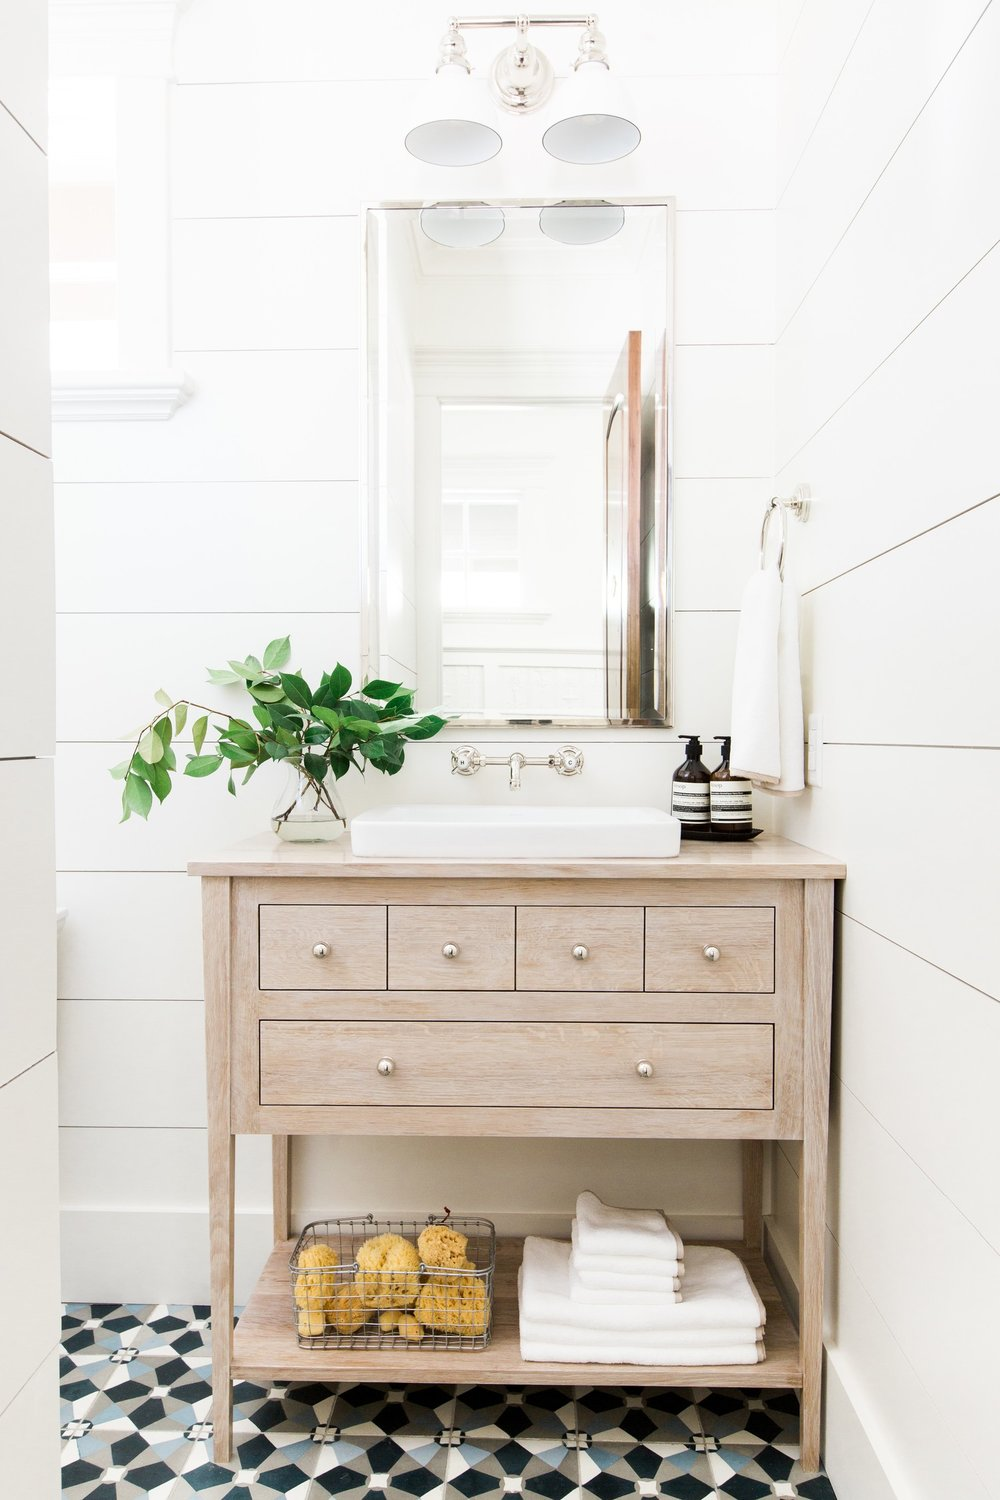 Wide+shiplap+planks,+bleached+oak+vanity+and+cement+tile+floors+__+Studio+McGee.jpg